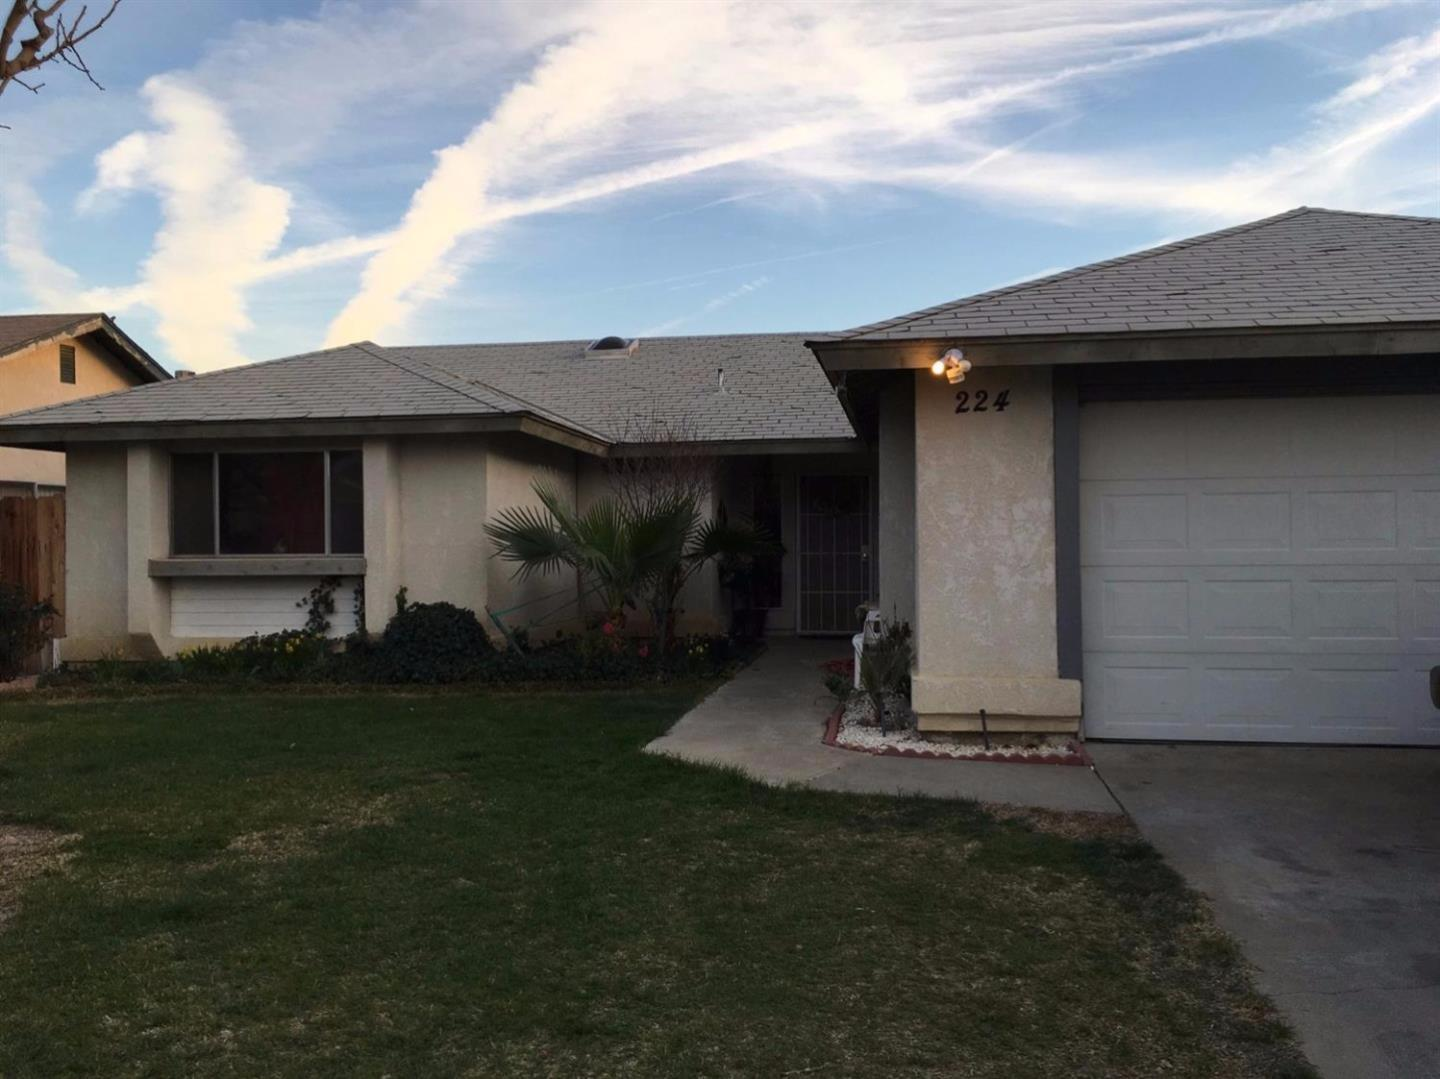 Single Family Home for Sale at 224 San Benito Street Avenal, California 93204 United States